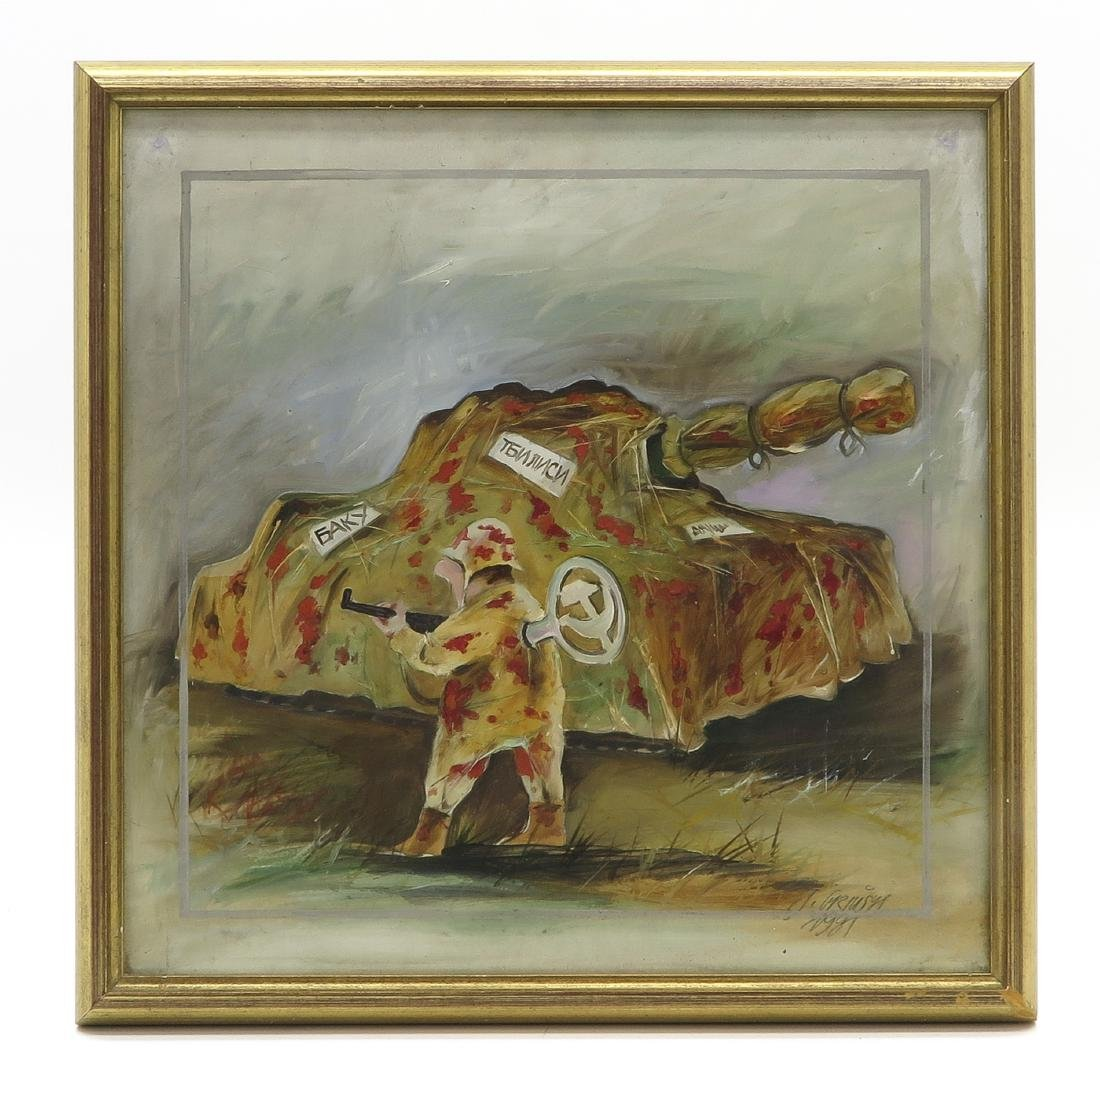 Painting Signed and Dated 1987